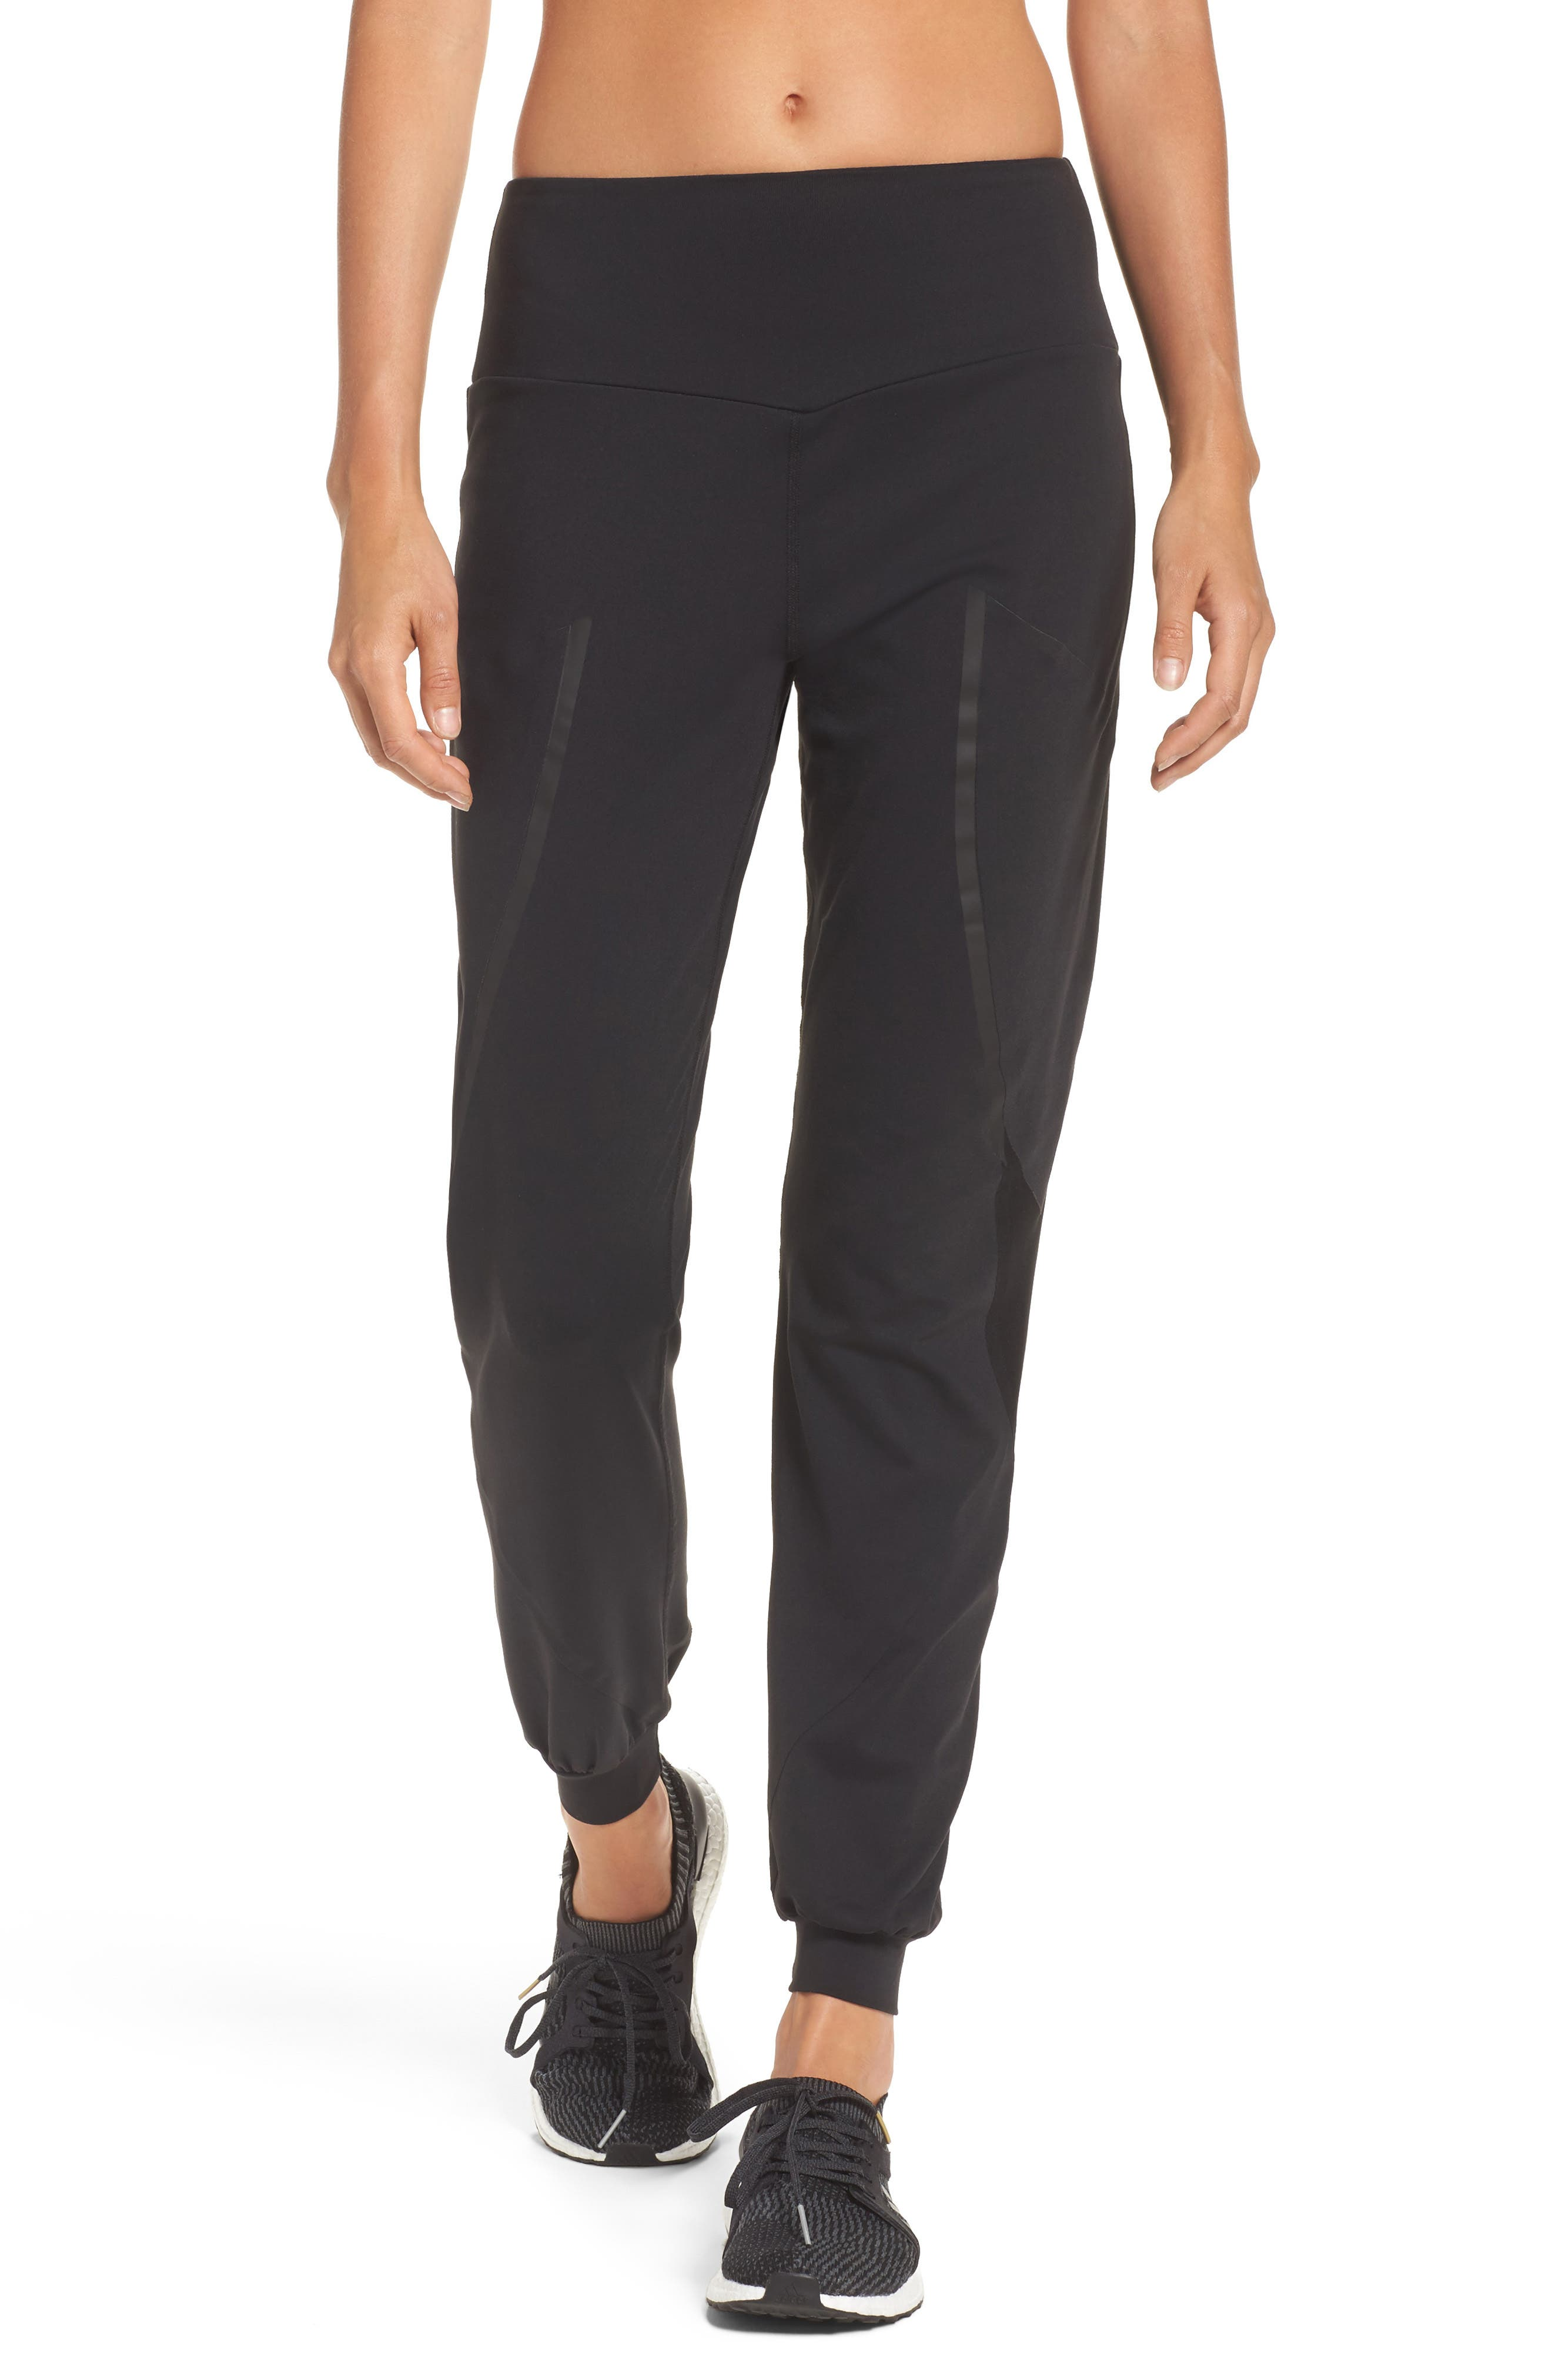 Alternate Image 1 Selected - BoomBoom Athletica Track Pants